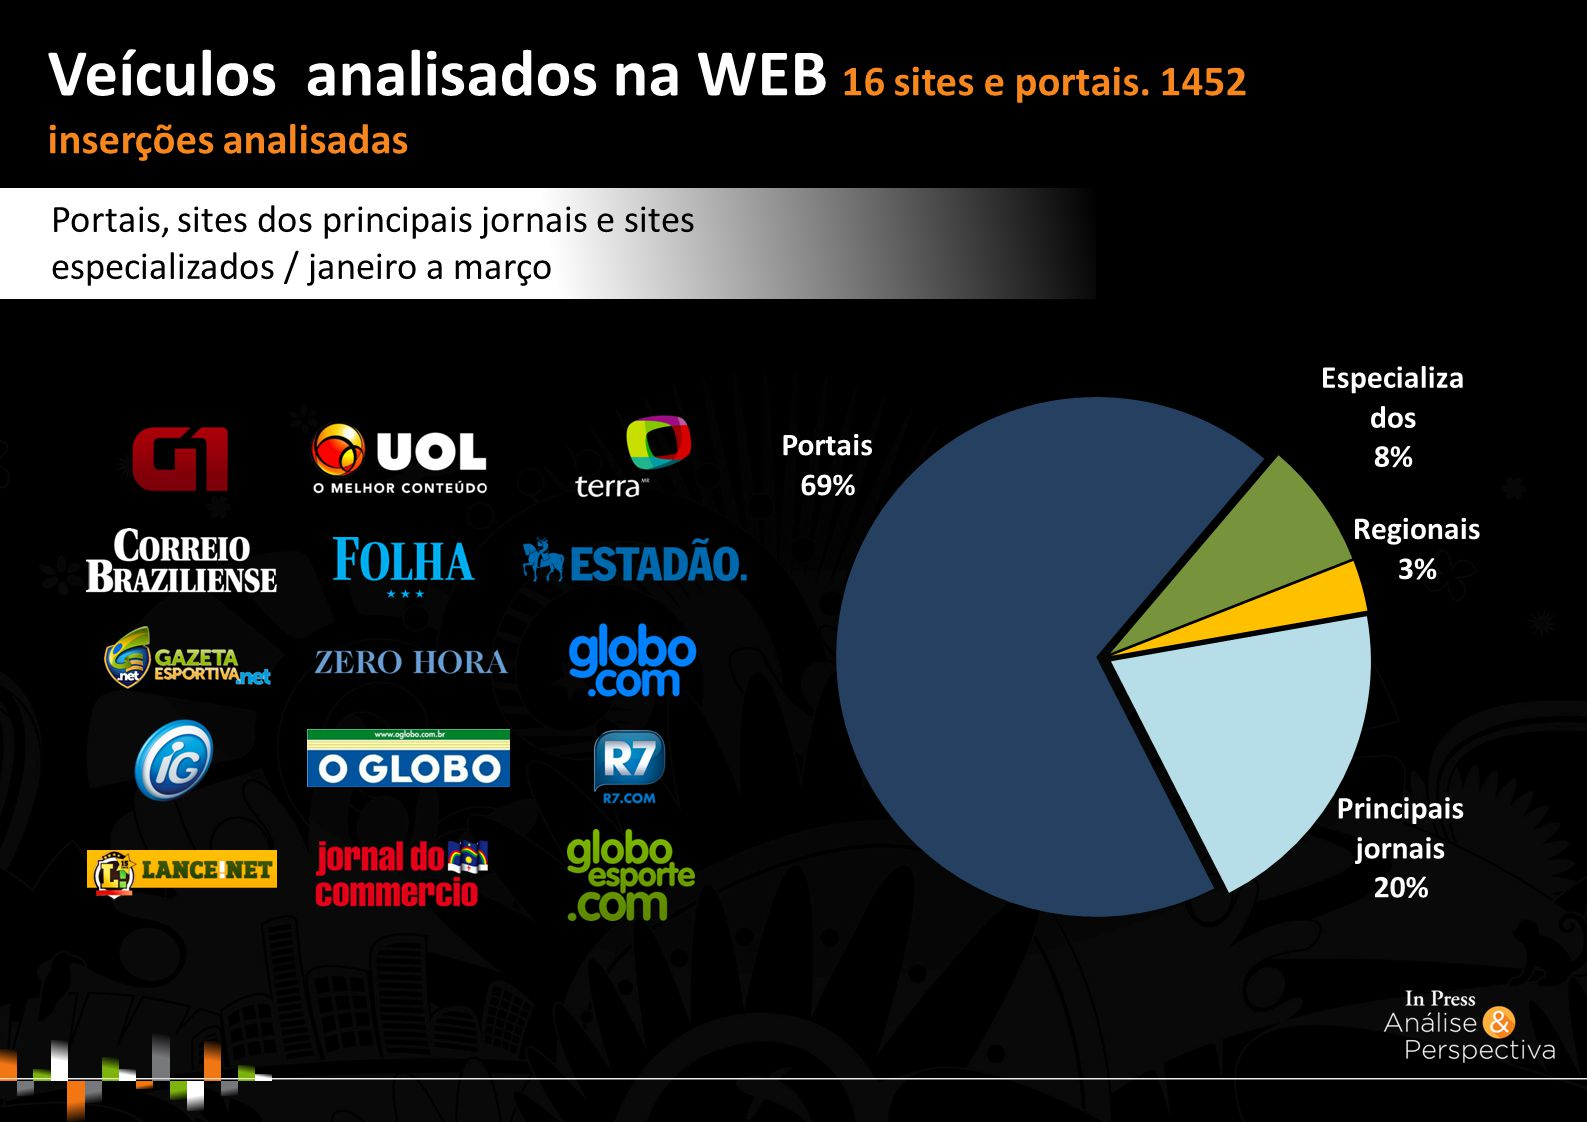 Veículos analisados na WEB 16 sites e portais.